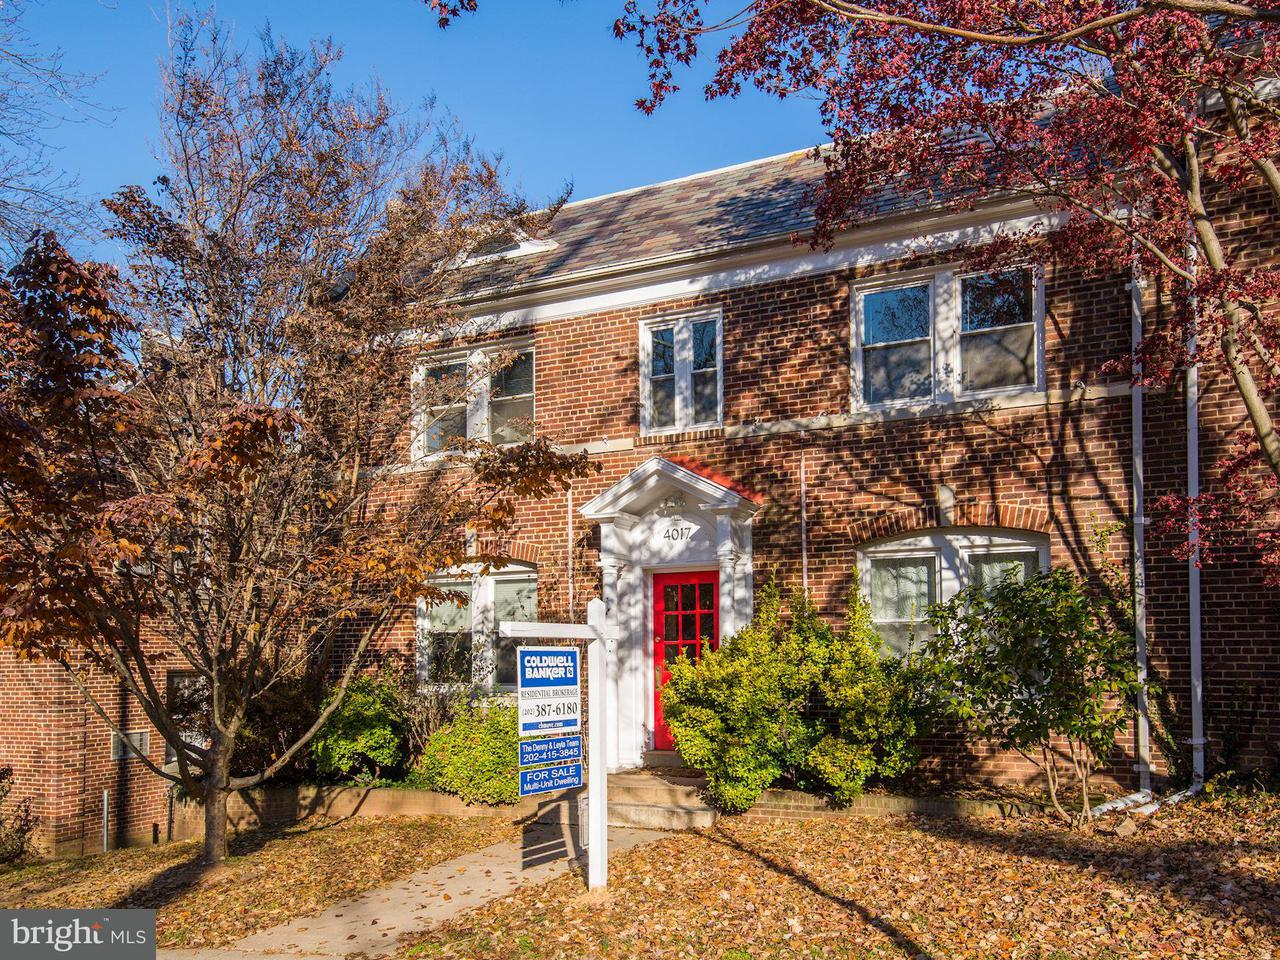 Multi-Family Home for Sale at 4017 DAVIS PL NW 4017 DAVIS PL NW Washington, District Of Columbia 20007 United States